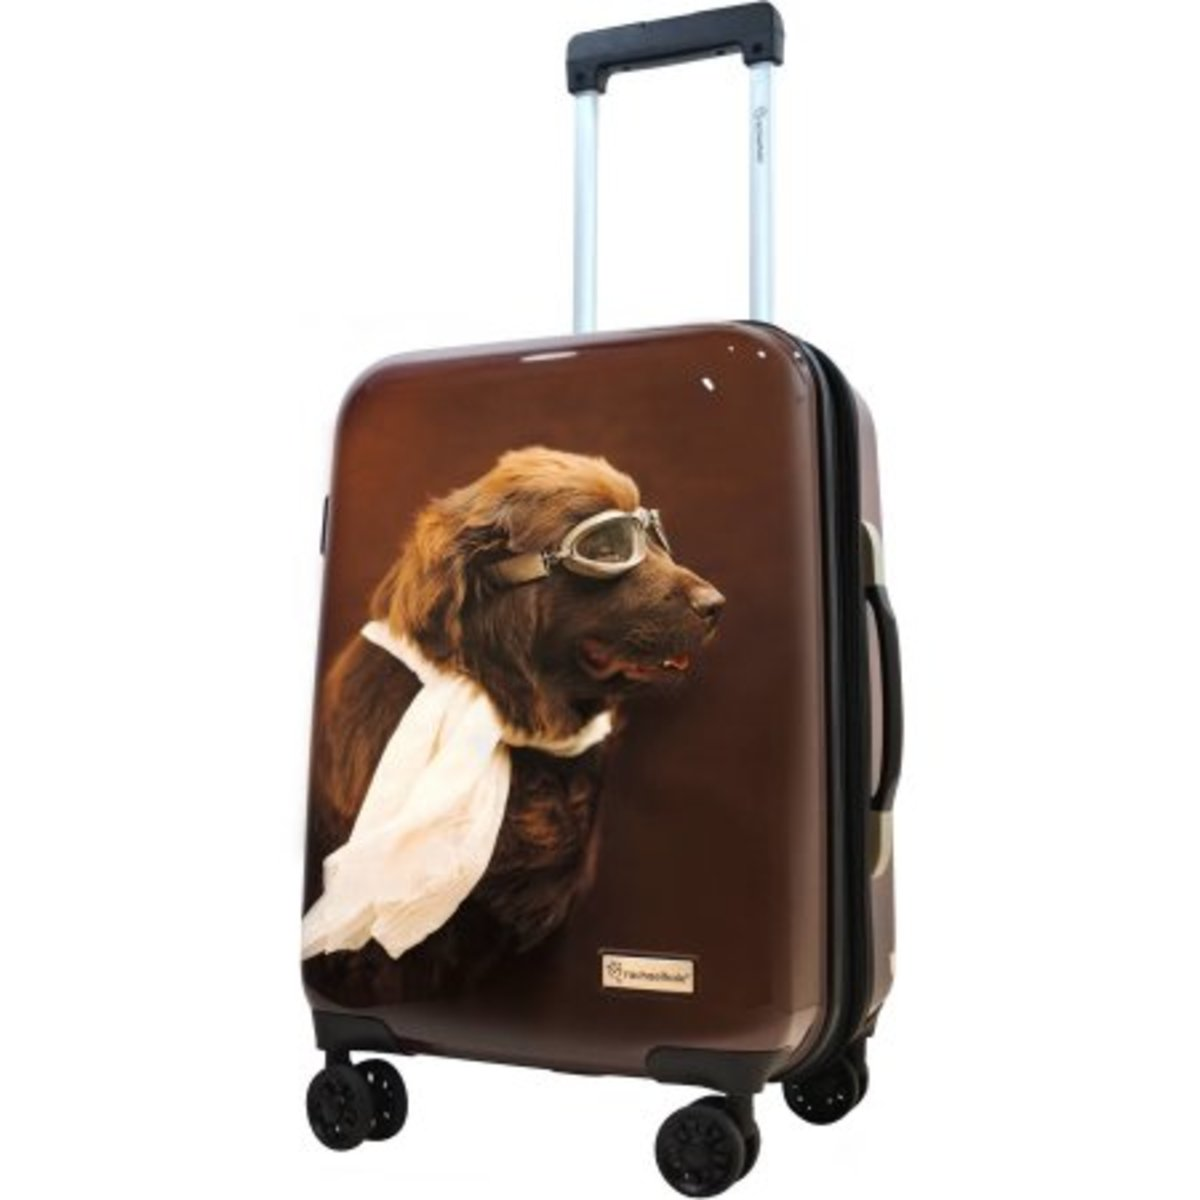 Stylish Newfoundland suitcase